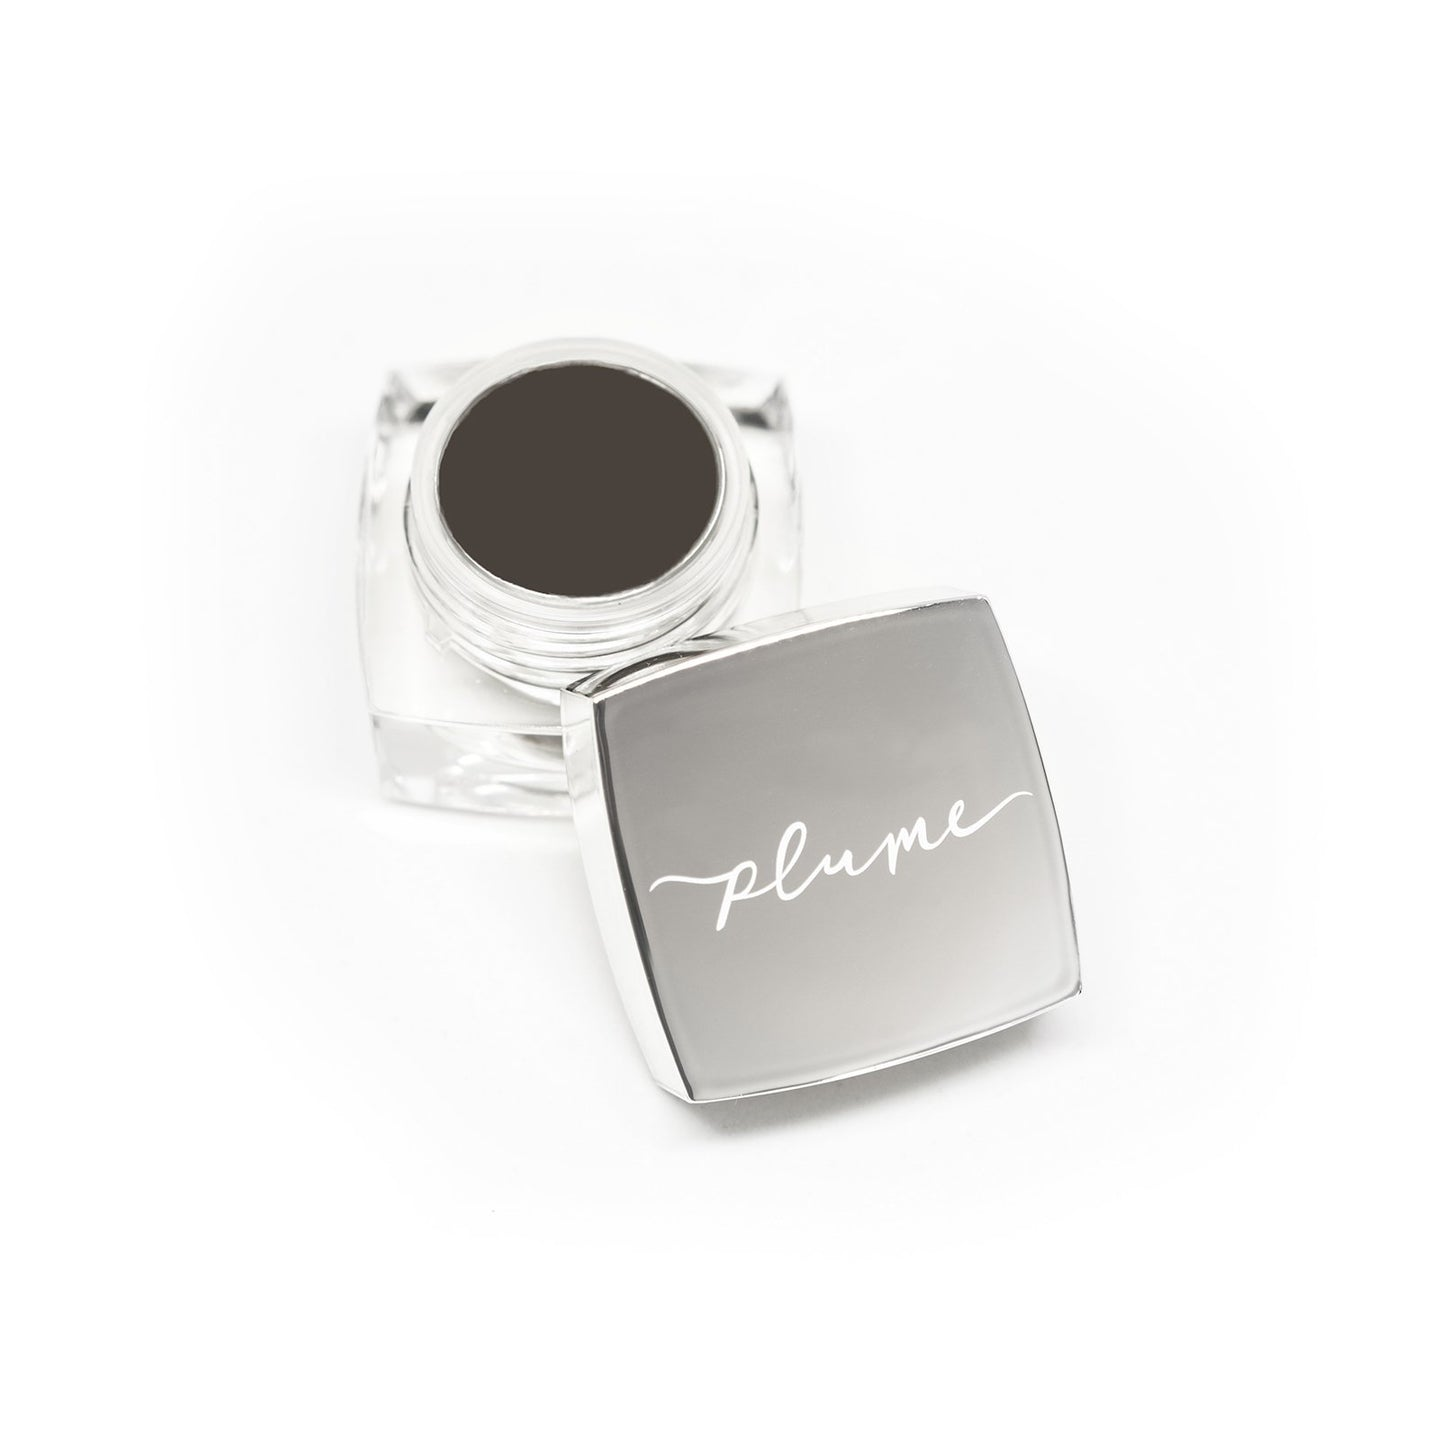 Shop Nourish & Define Brow Pomade Endless Midnight by Plume Science - Let's make it a trend #explorebeautiful eyebrows